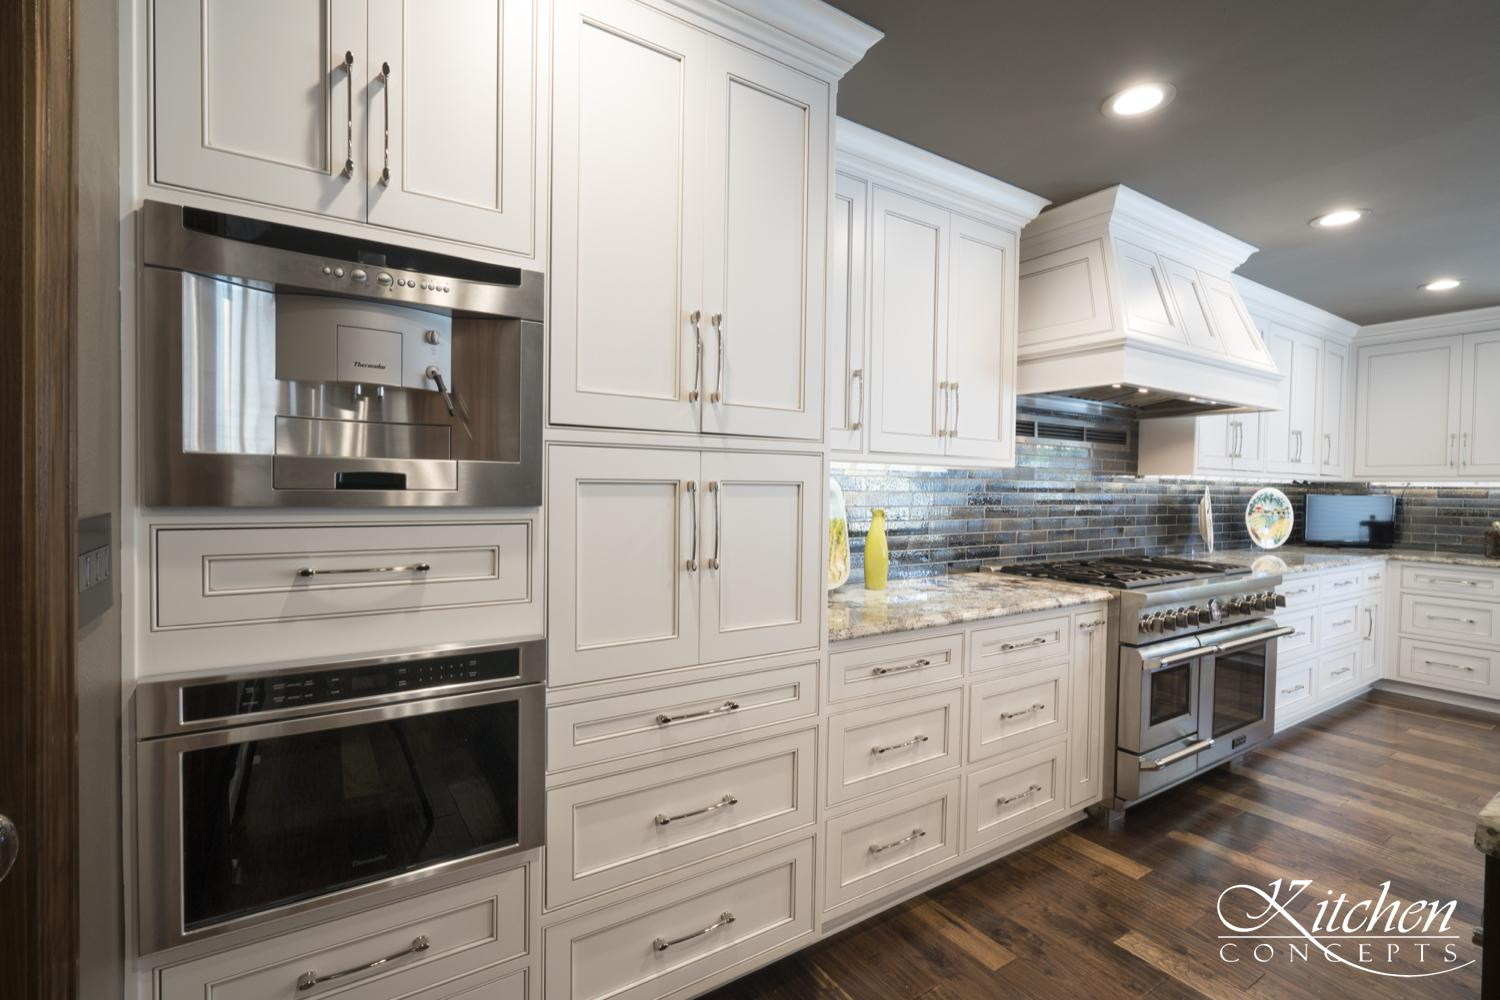 Photos - Kitchen Concepts